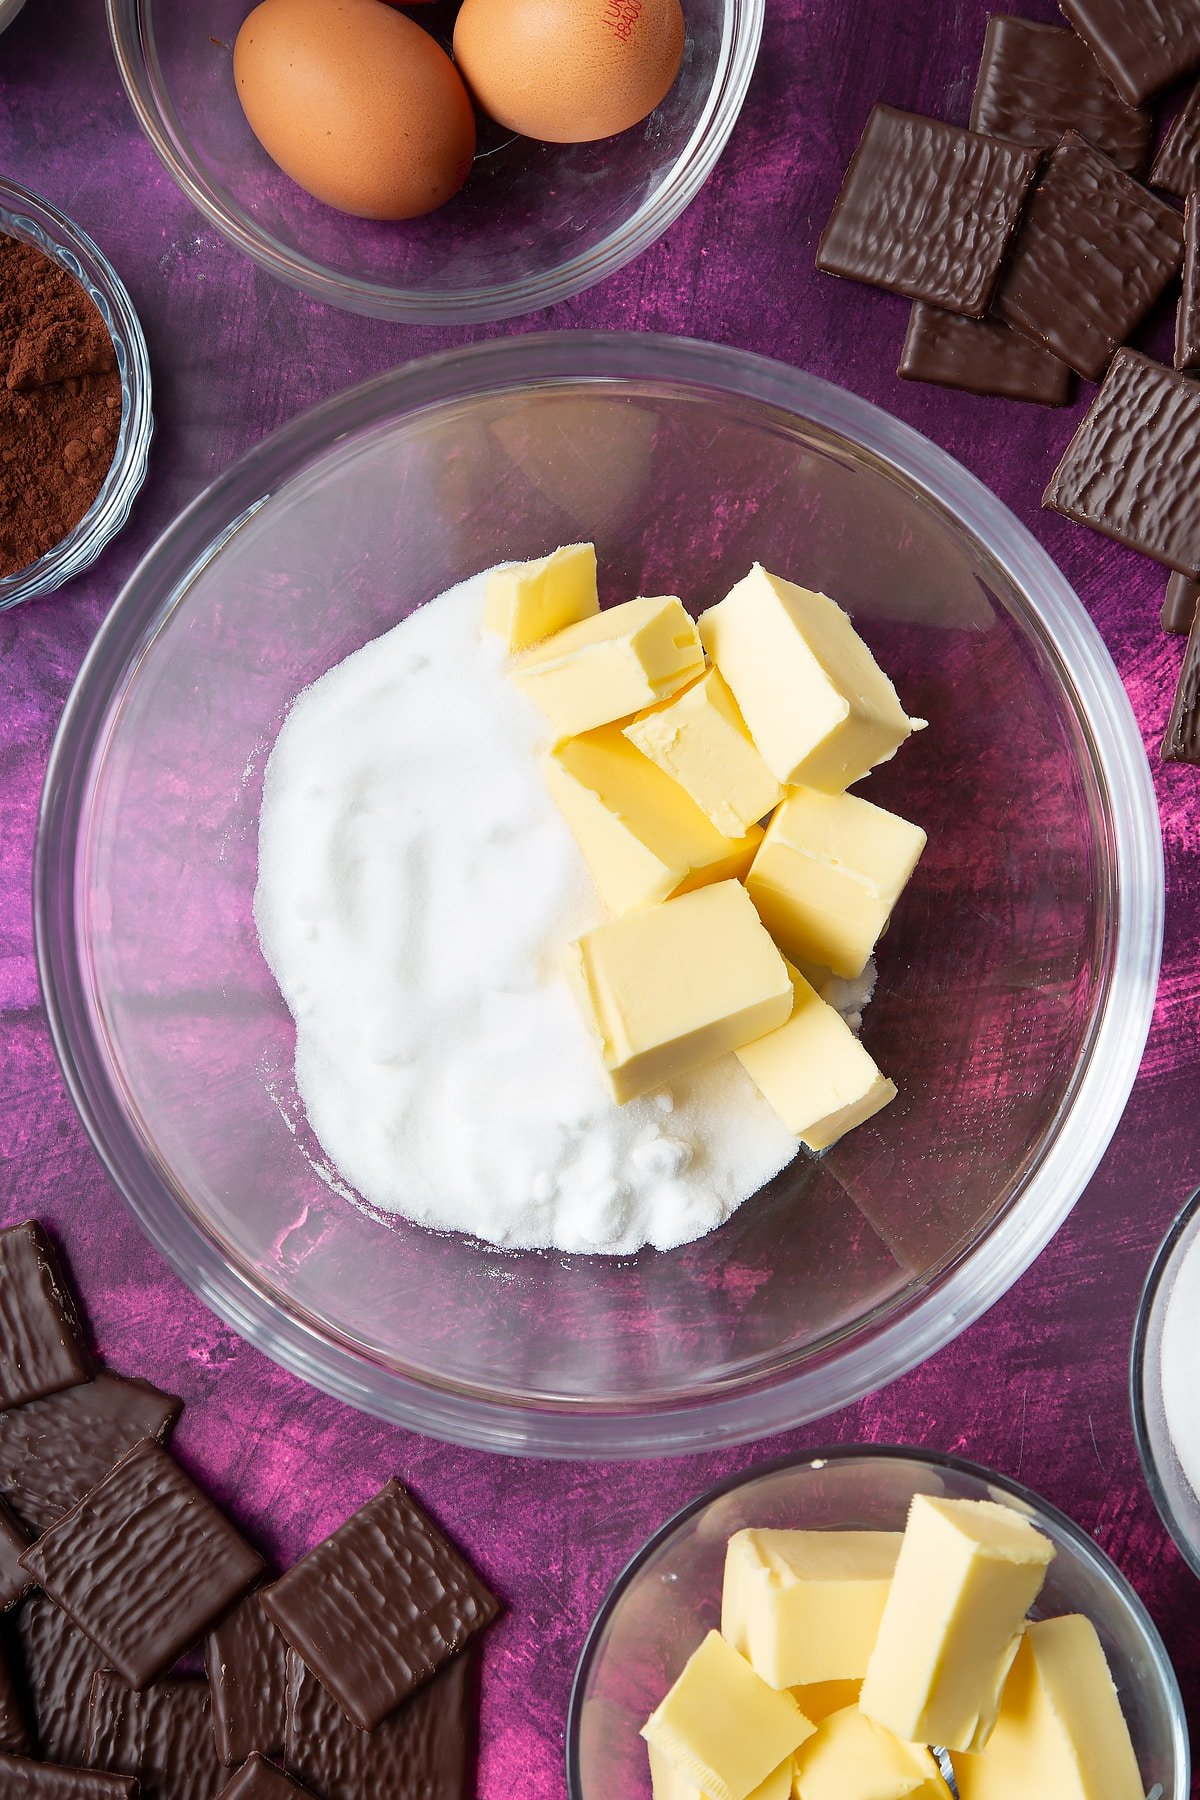 Sugar and butter in a glass mixing bowl. Ingredients to make After Eight cupcakes surround the bowl.